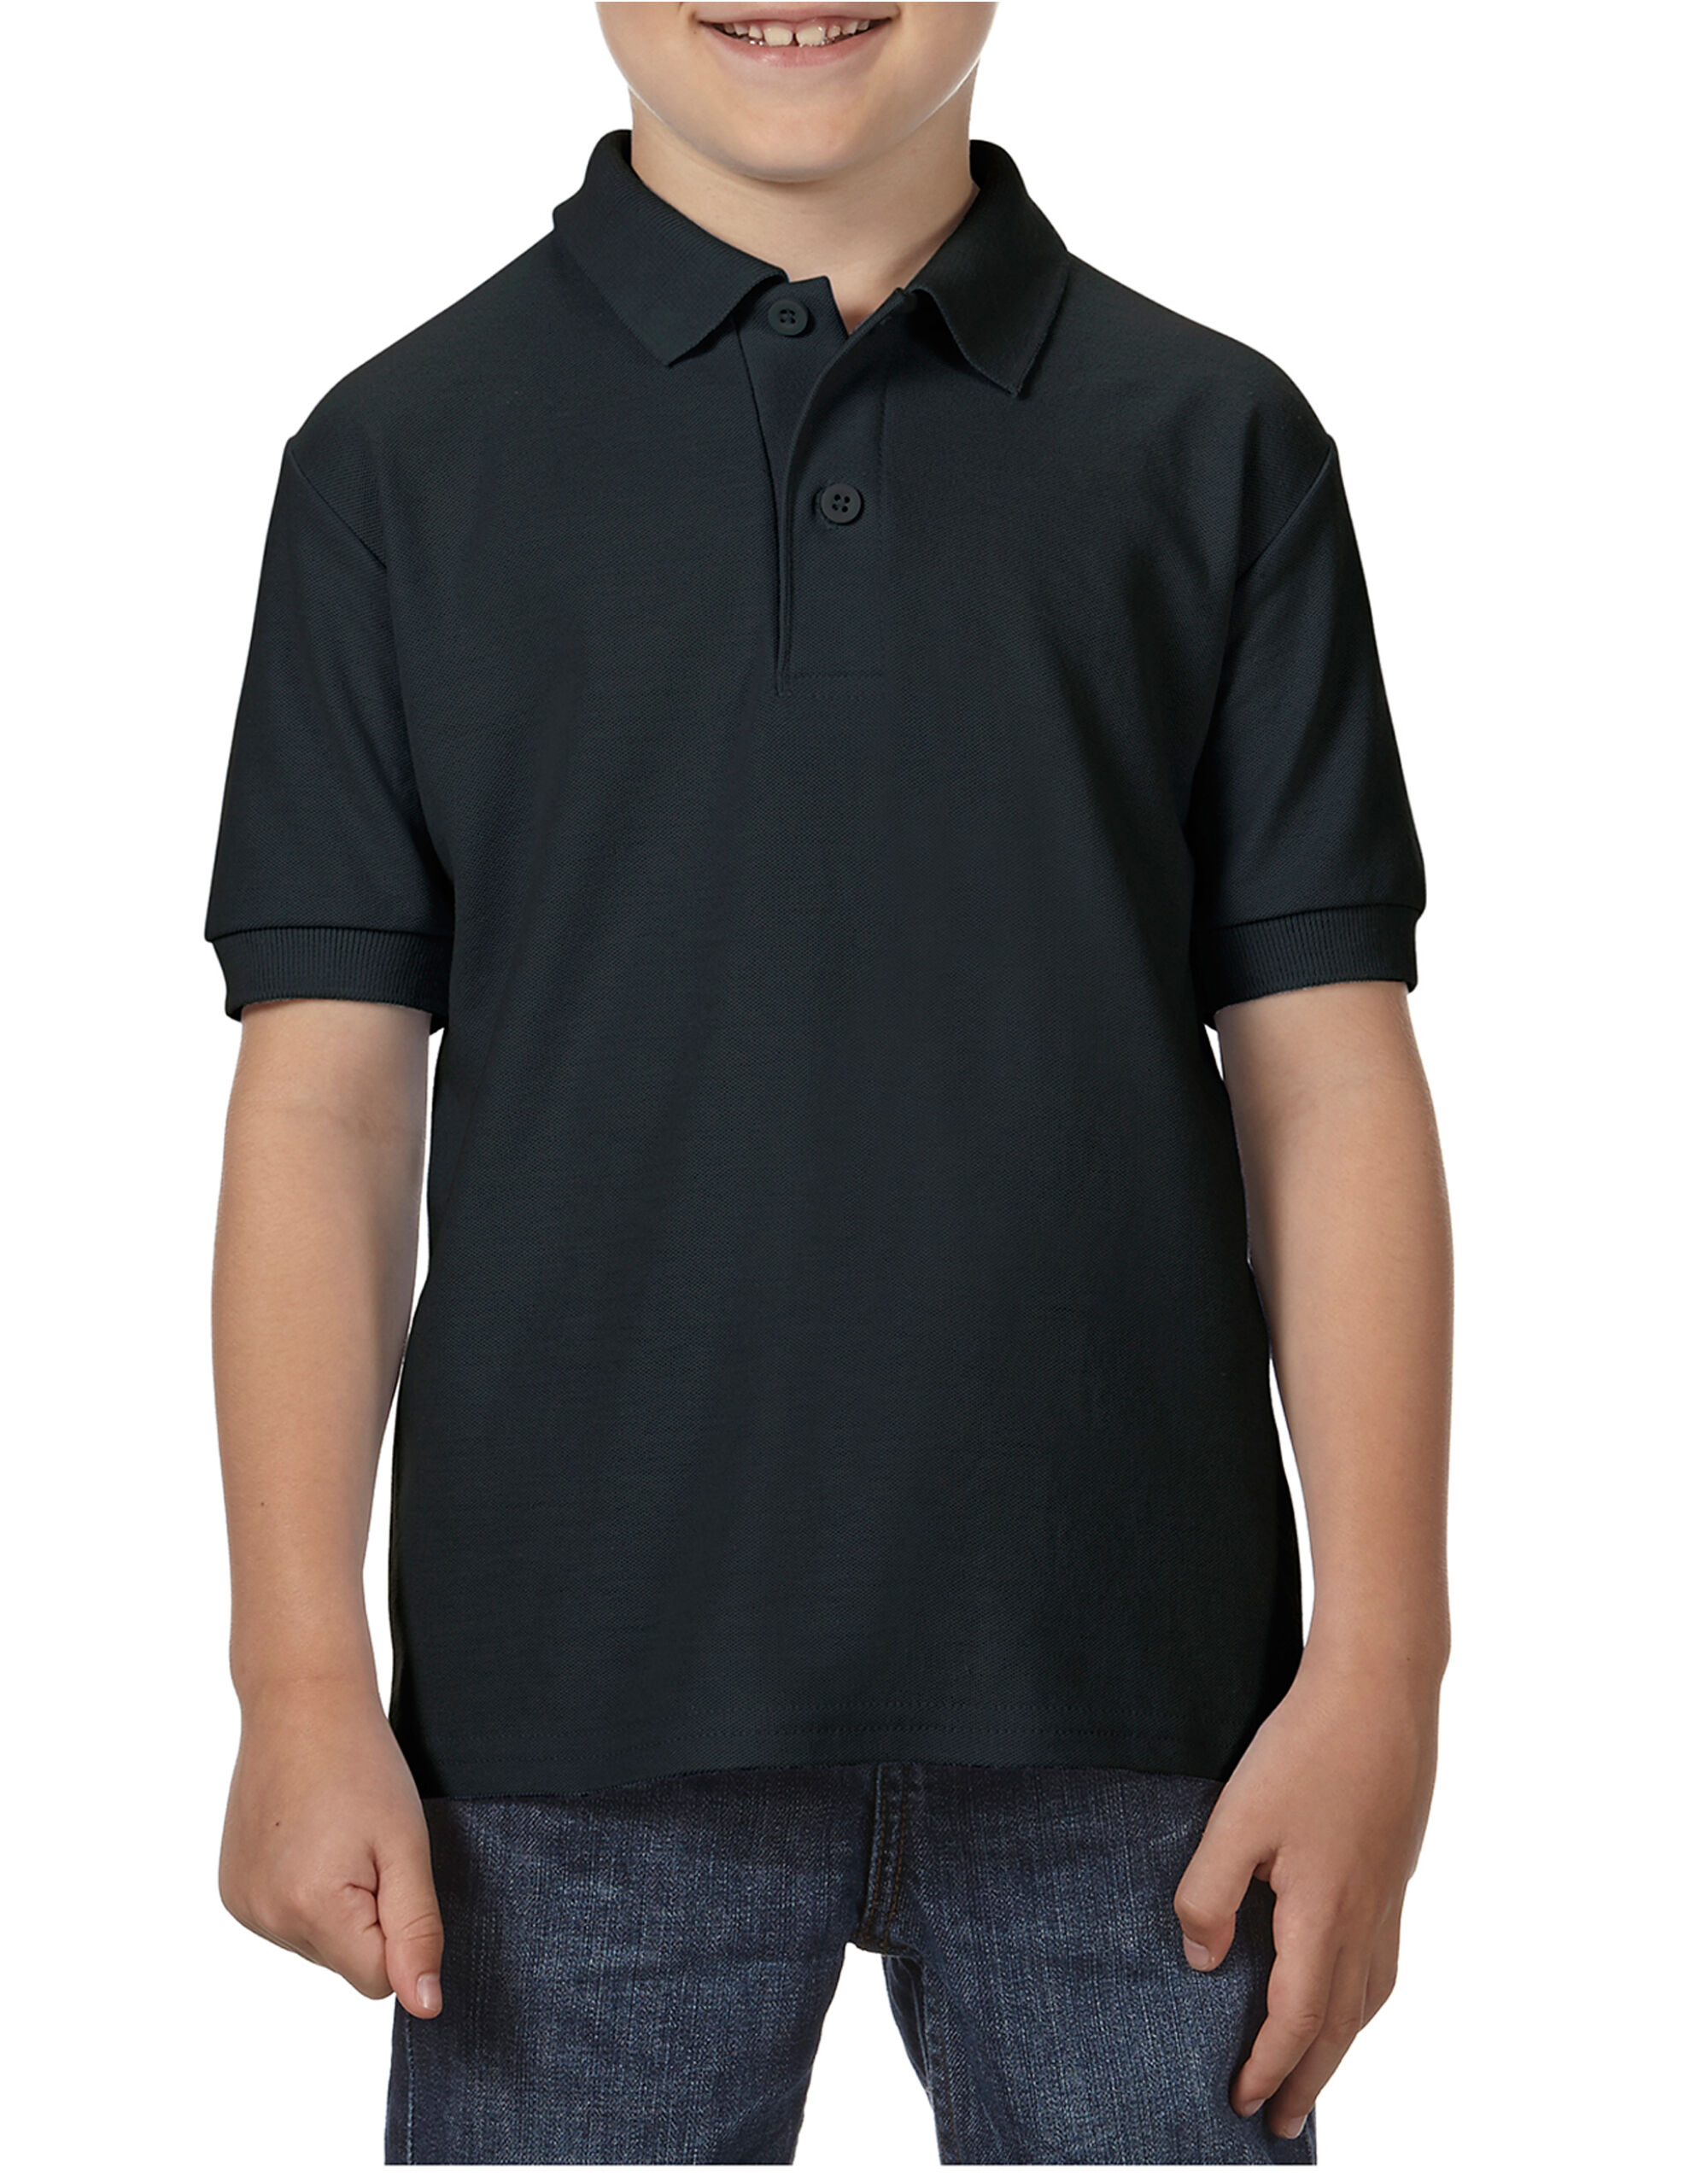 DryBlend Youth Sport Shirt